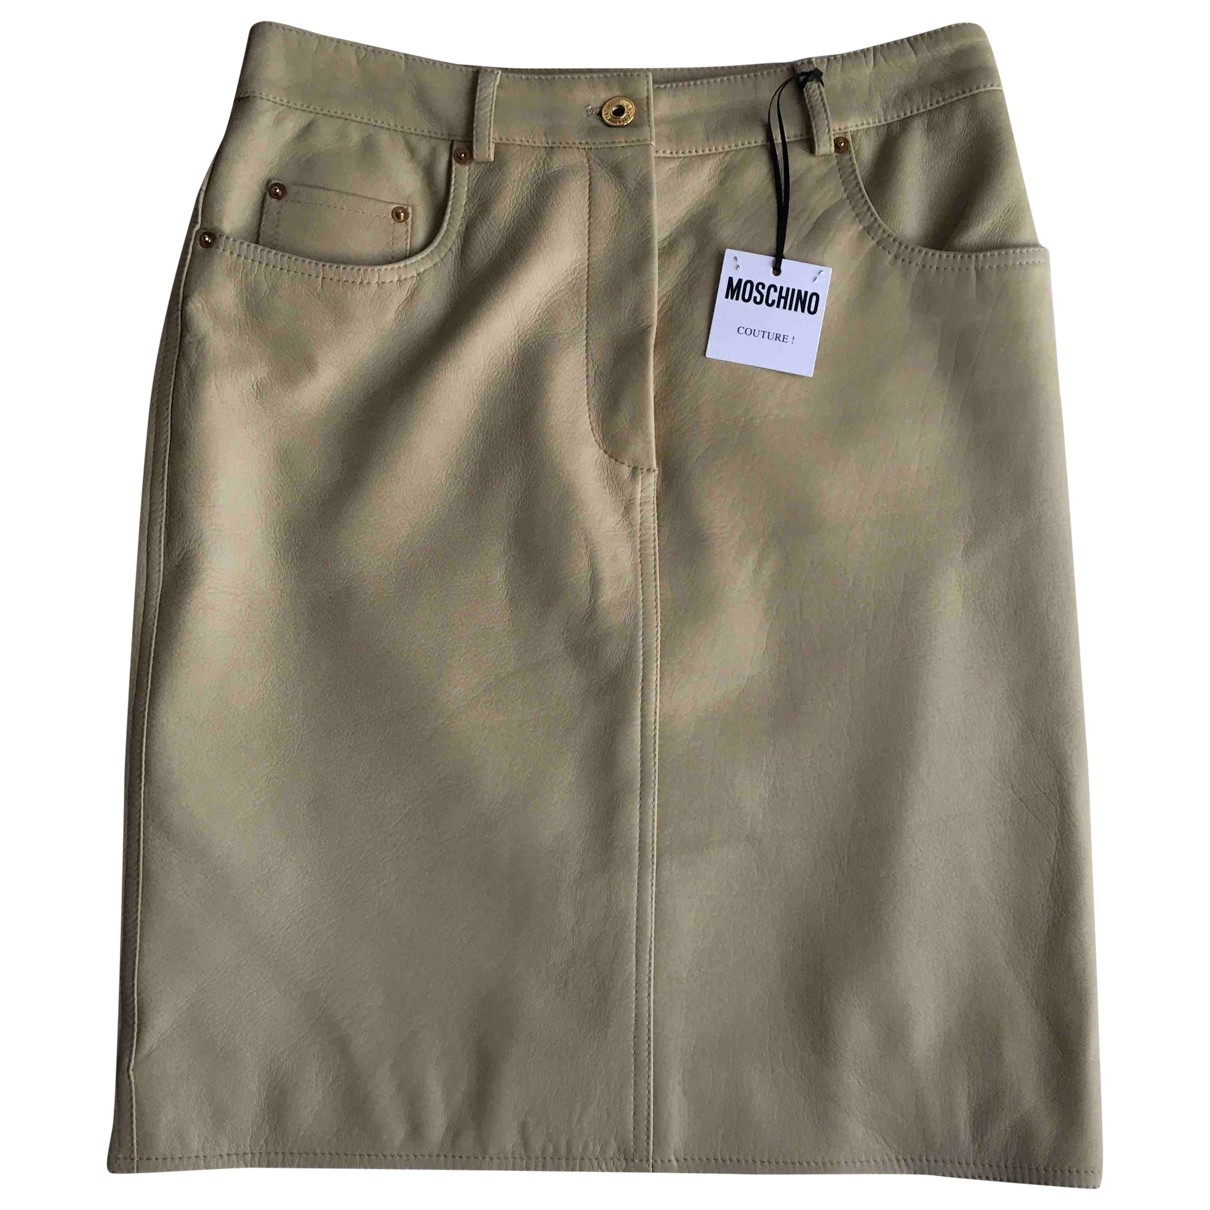 Moschino \N Beige Leather skirt for Women 42 IT